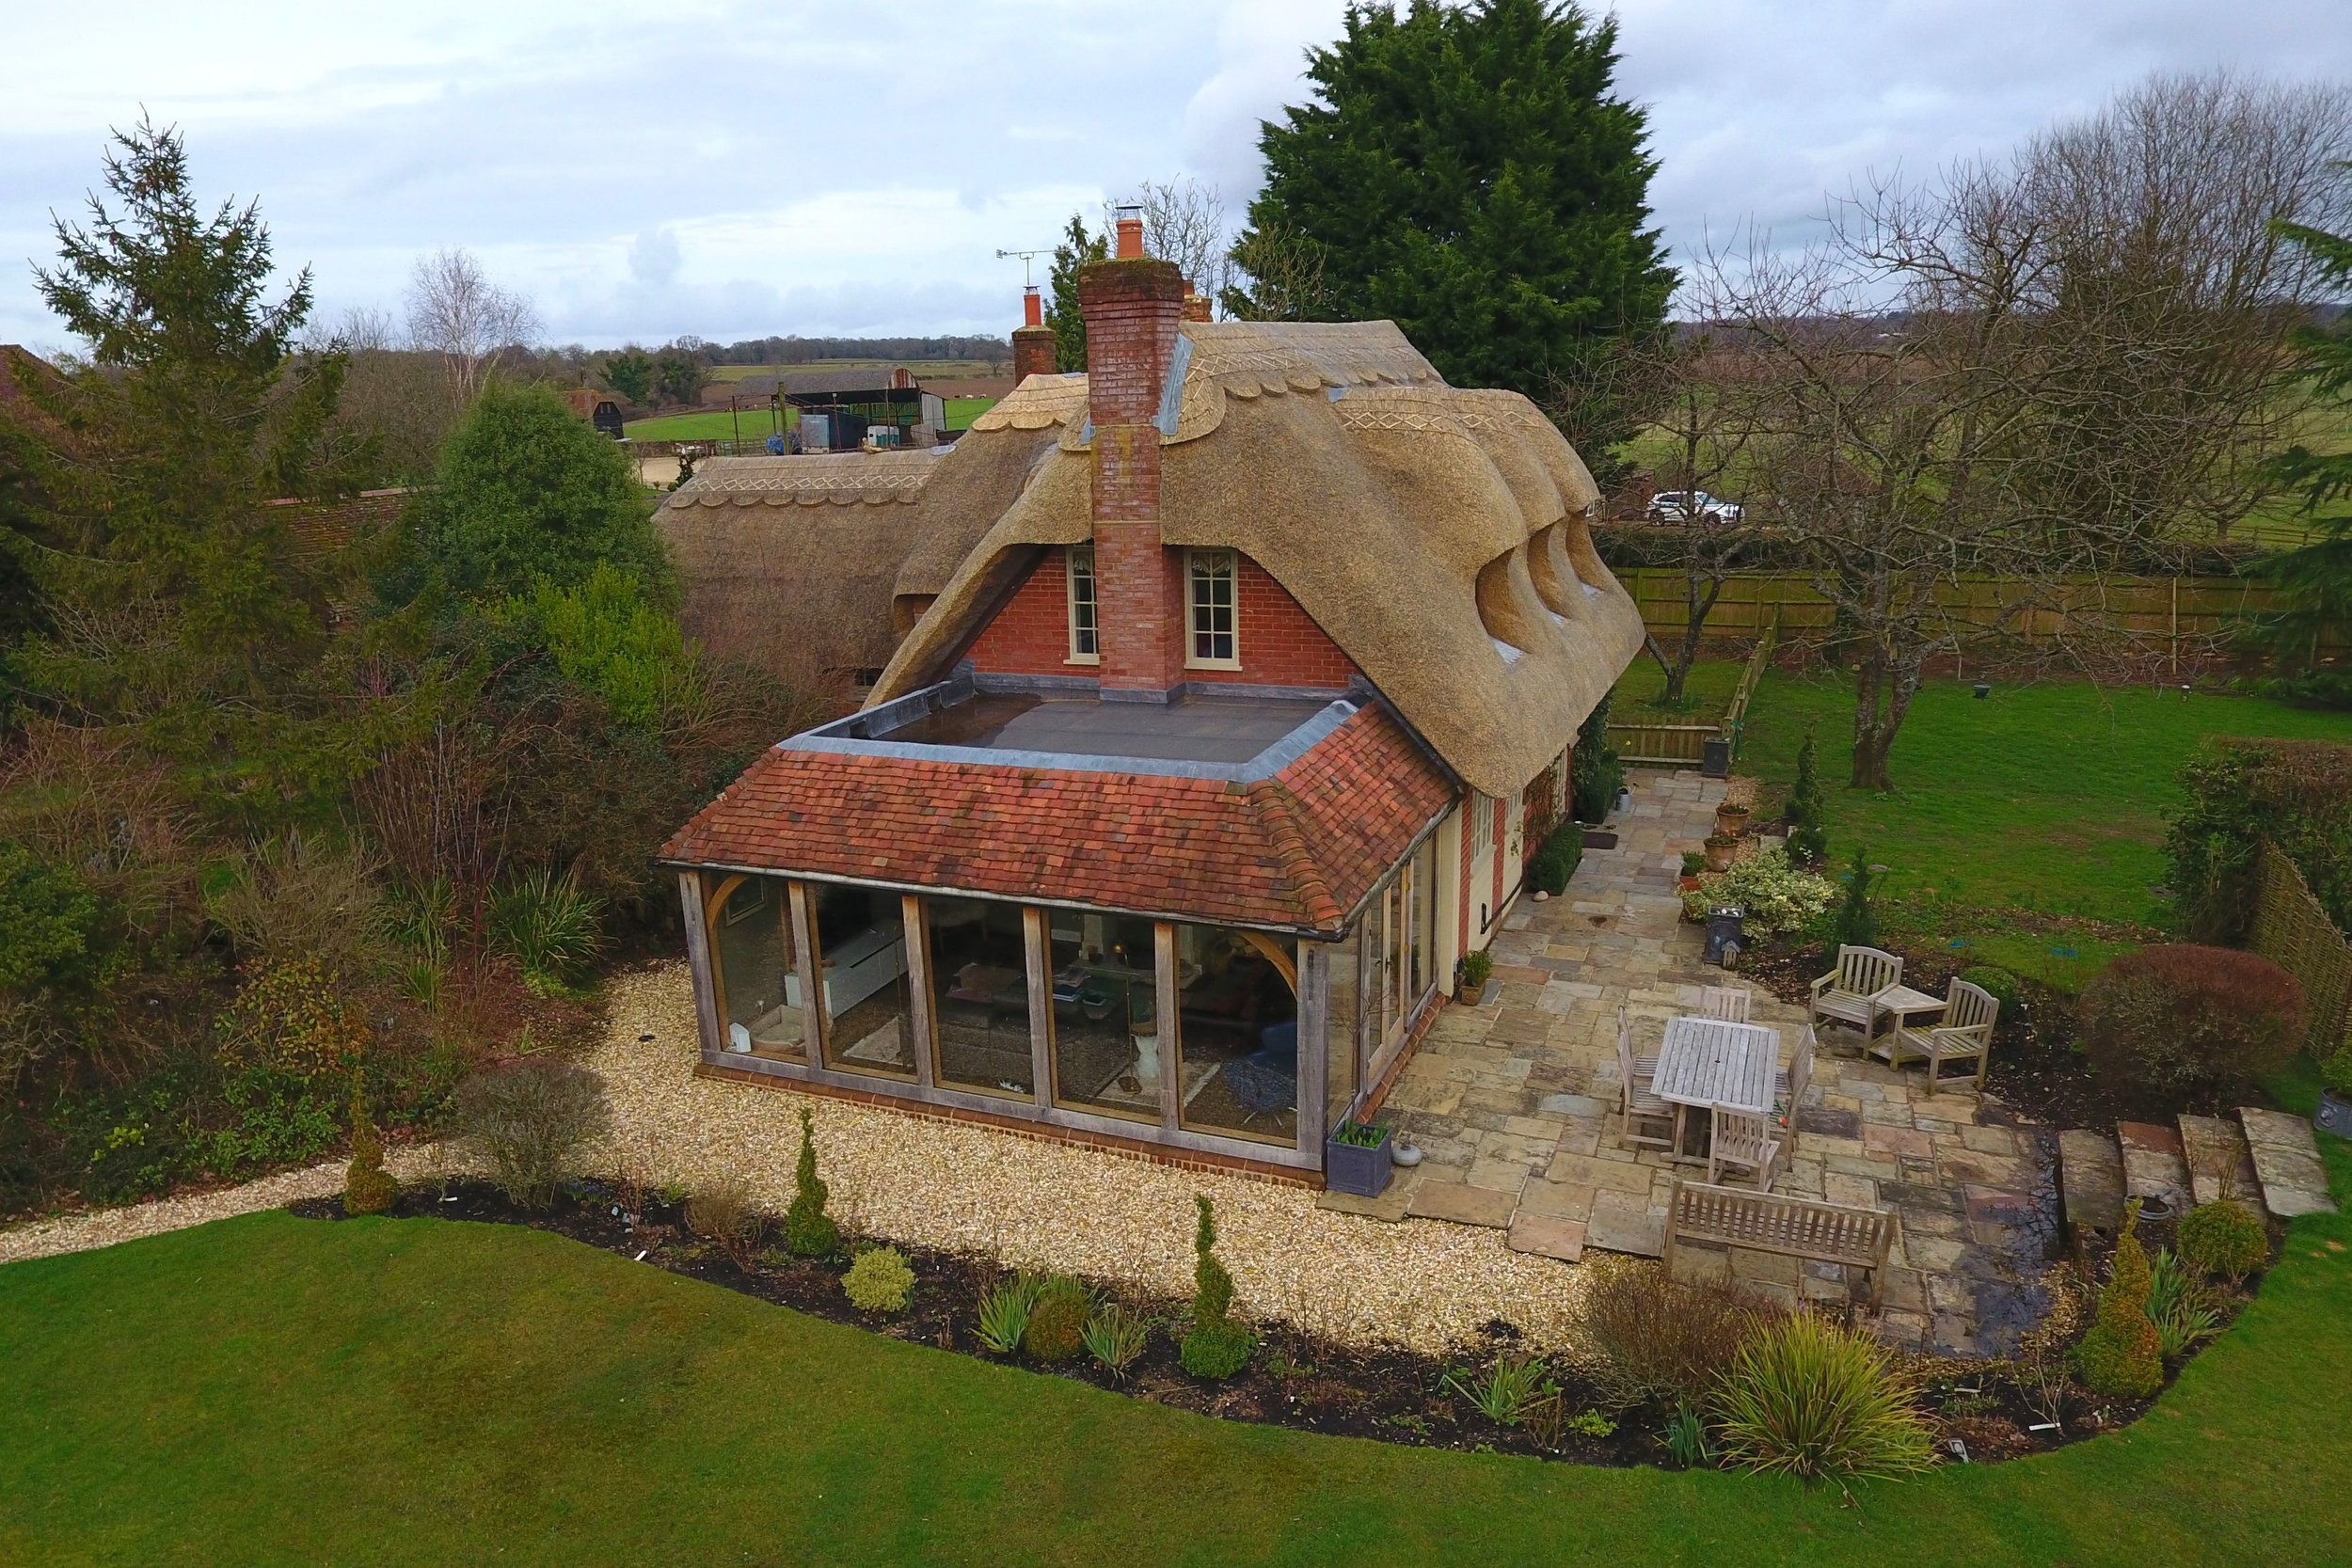 A recently completed project in the Test Valley, Hampshire, England